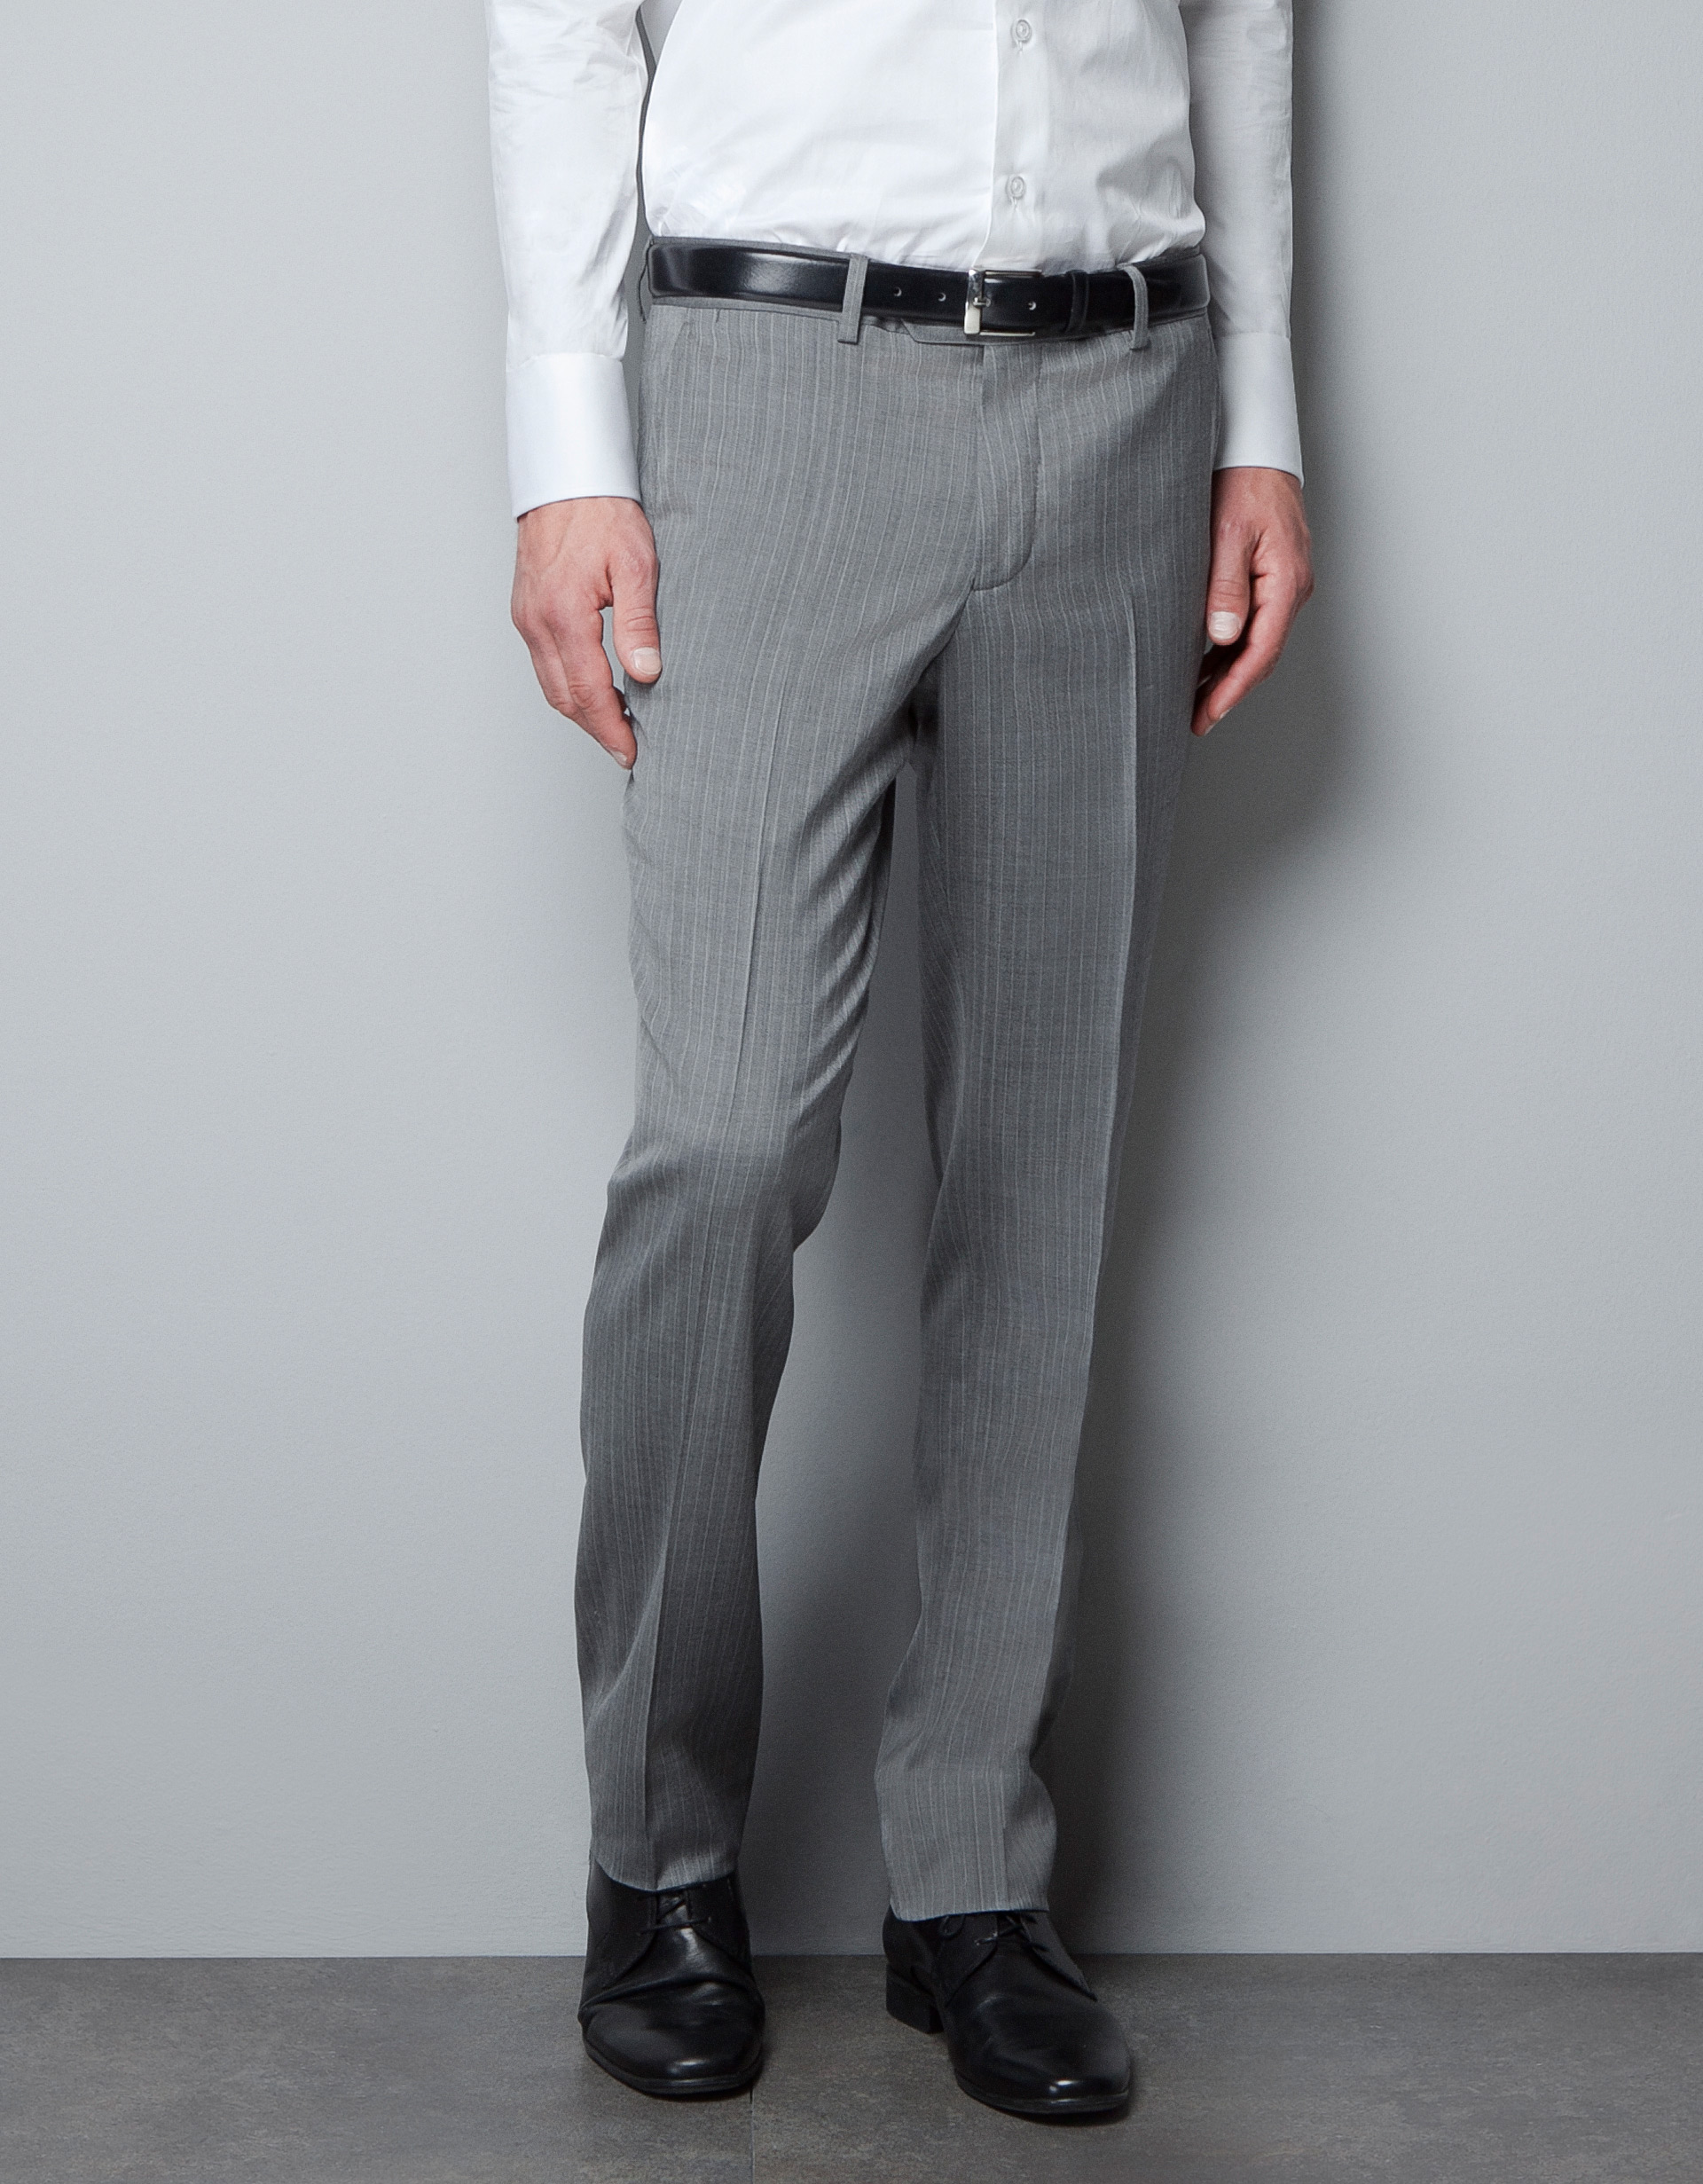 Grey flannel trousers match almost any color and pattern. There is no color or pattern of shirt, tie, or jacket with which it clashes. You could blindly pick any combination to go with your grey flannel trousers and rest assured that it will work.